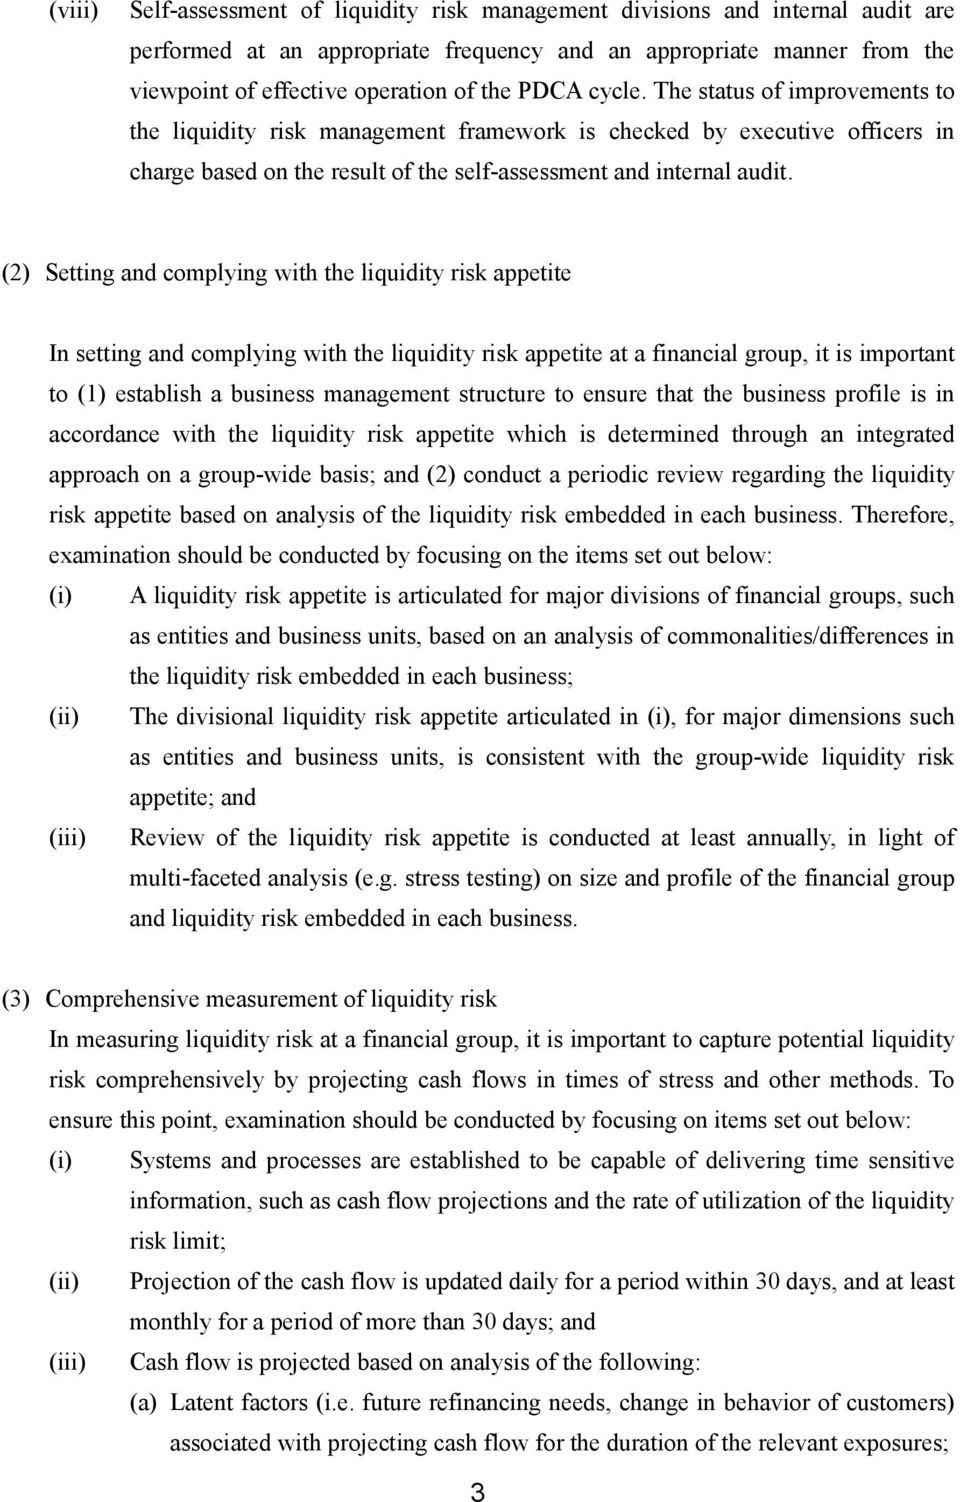 (2) Setting and complying with the liquidity risk appetite In setting and complying with the liquidity risk appetite at a financial group, it is important to (1) establish a business management